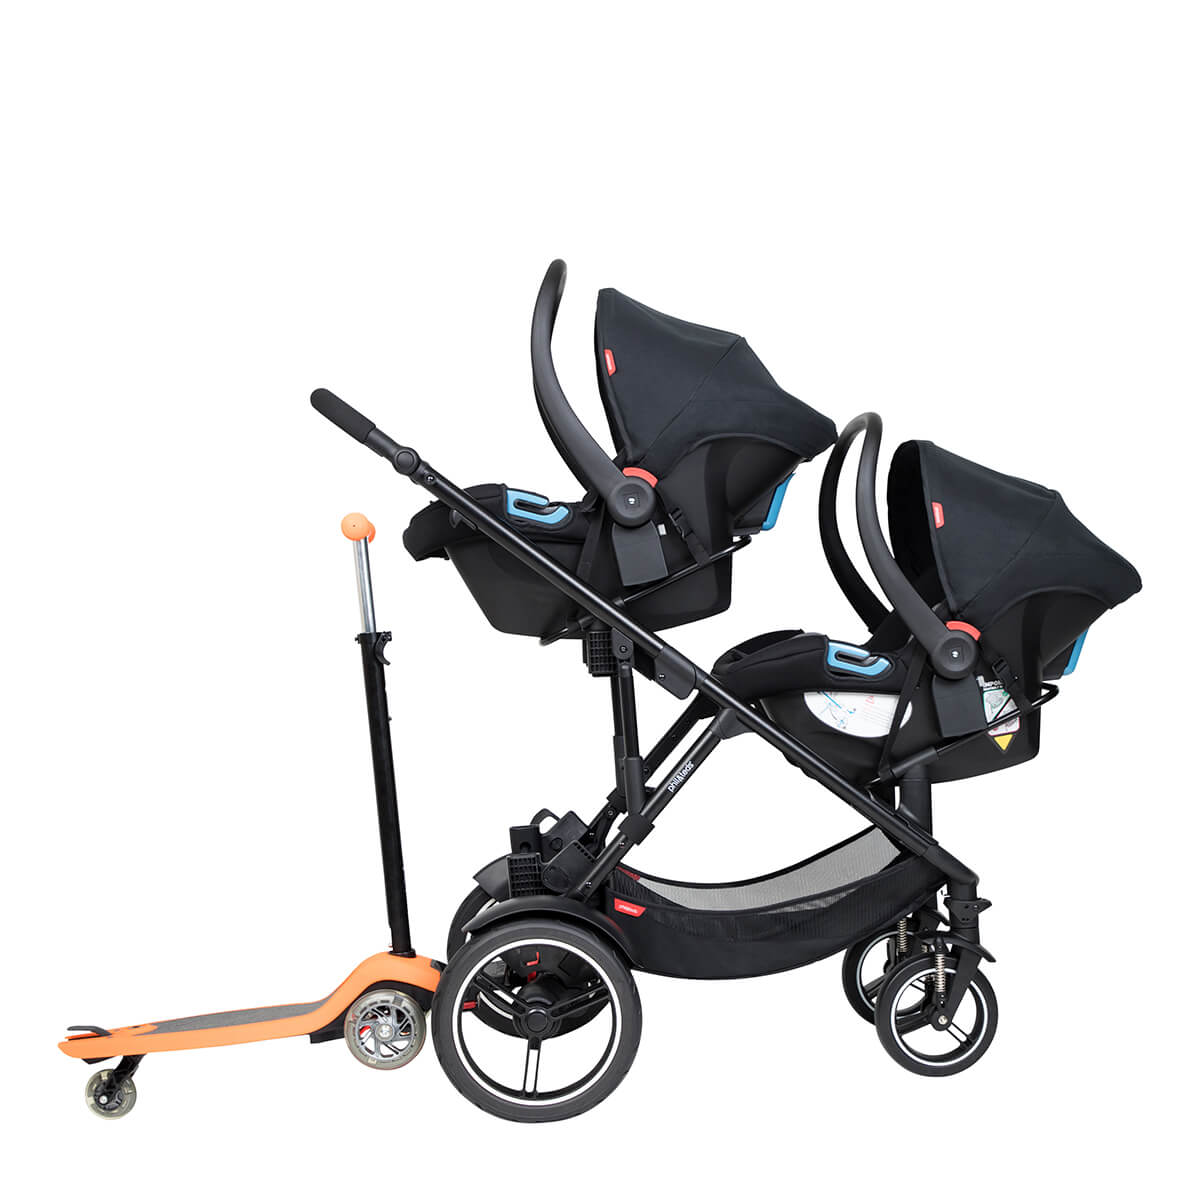 https://cdn.accentuate.io/4509529309272/19272835367000/philteds-voyager-buggy-with-double-travel-systems-and-freerider-stroller-board-in-the-rear-v1626484659931.jpg?1200x1200